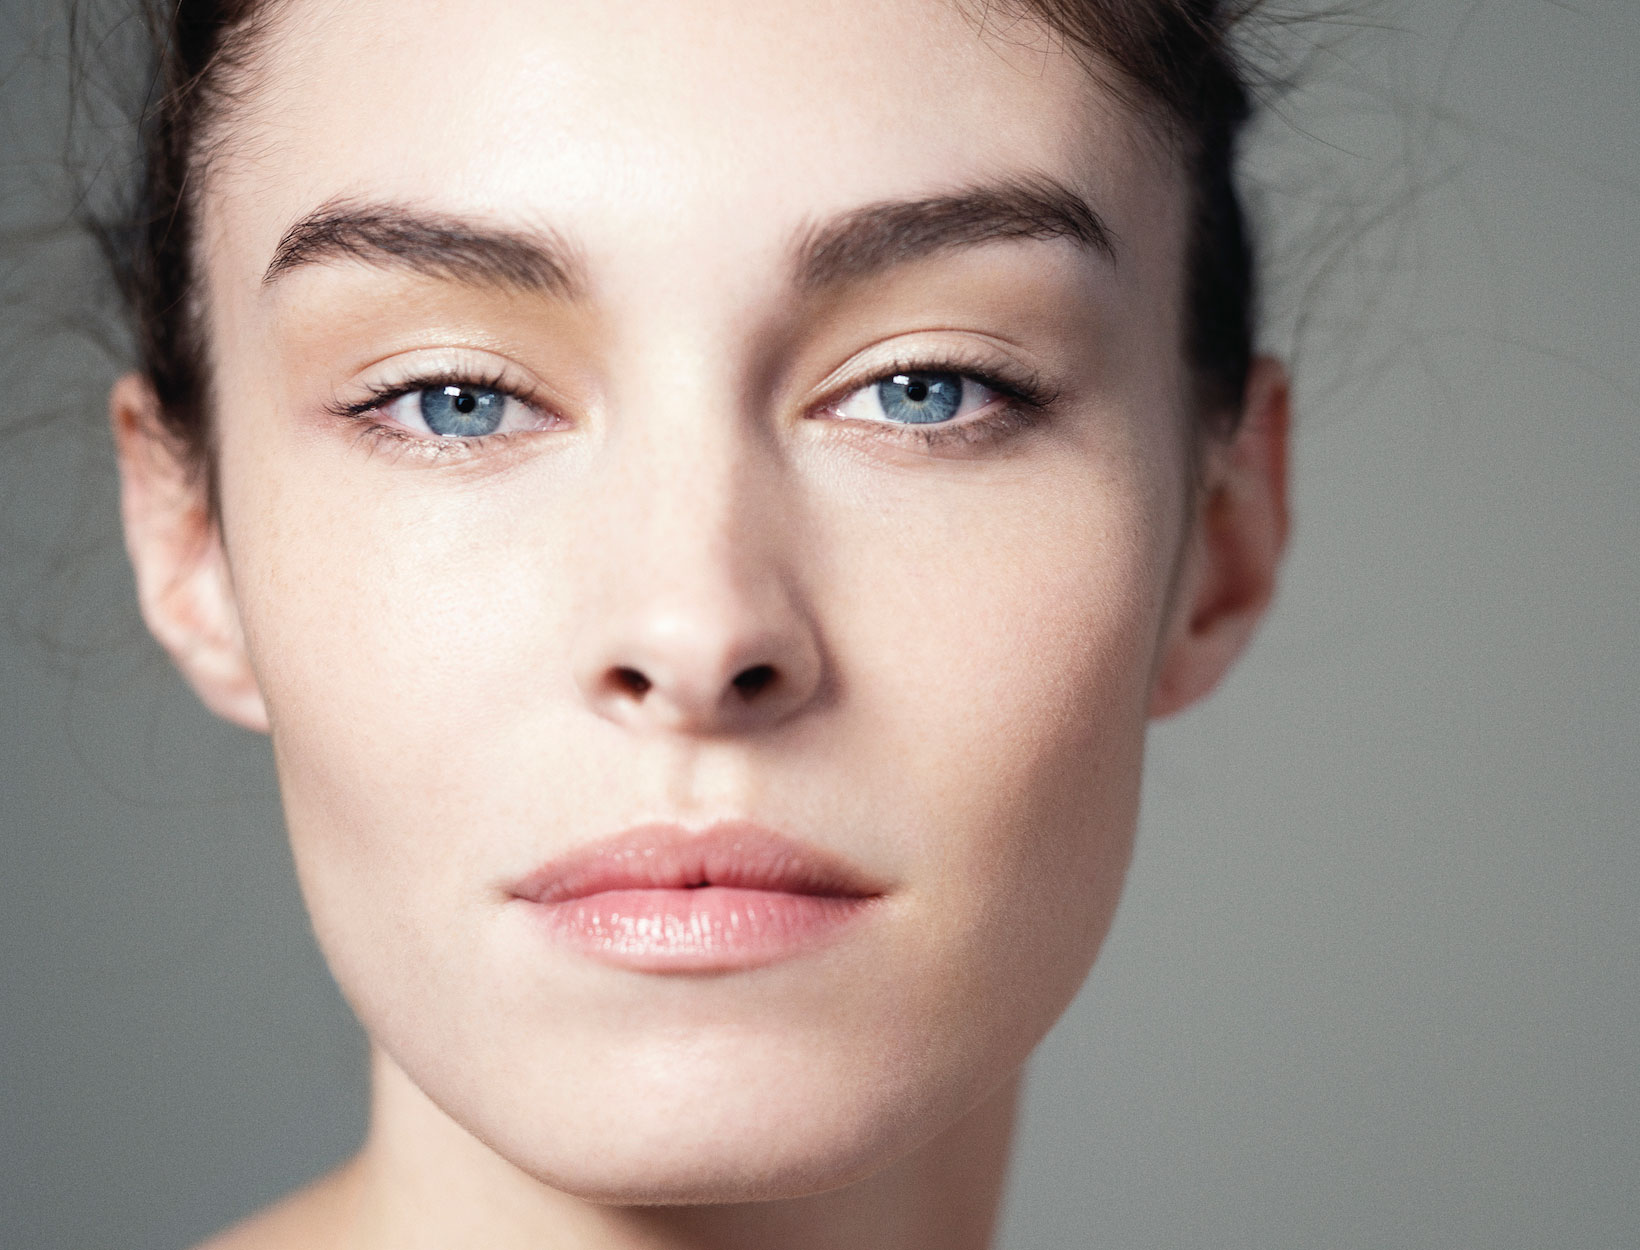 Skincare by Skin Type: Normal